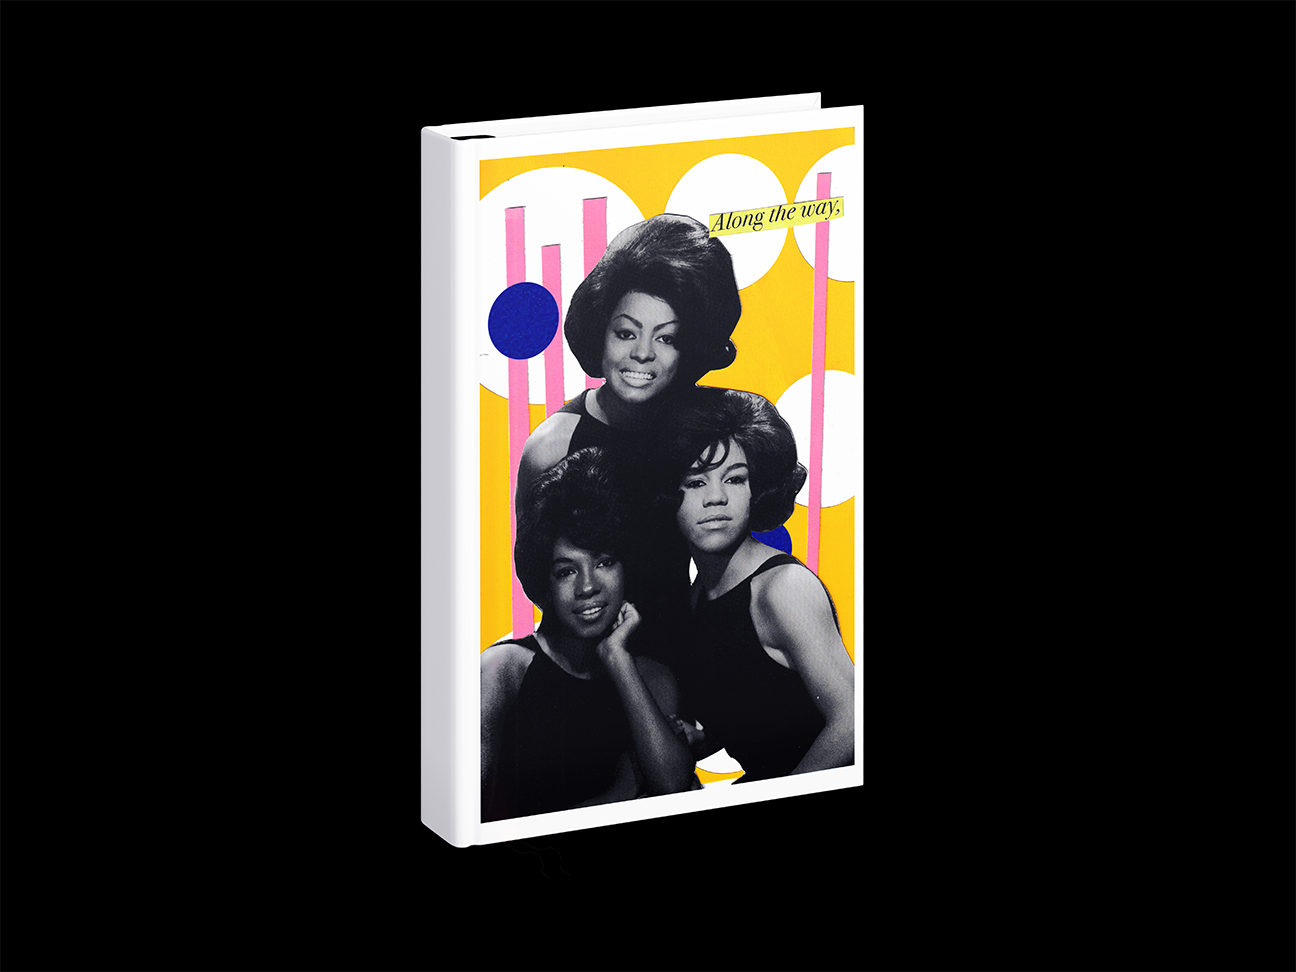 Collage book covers by Lauren Ortega